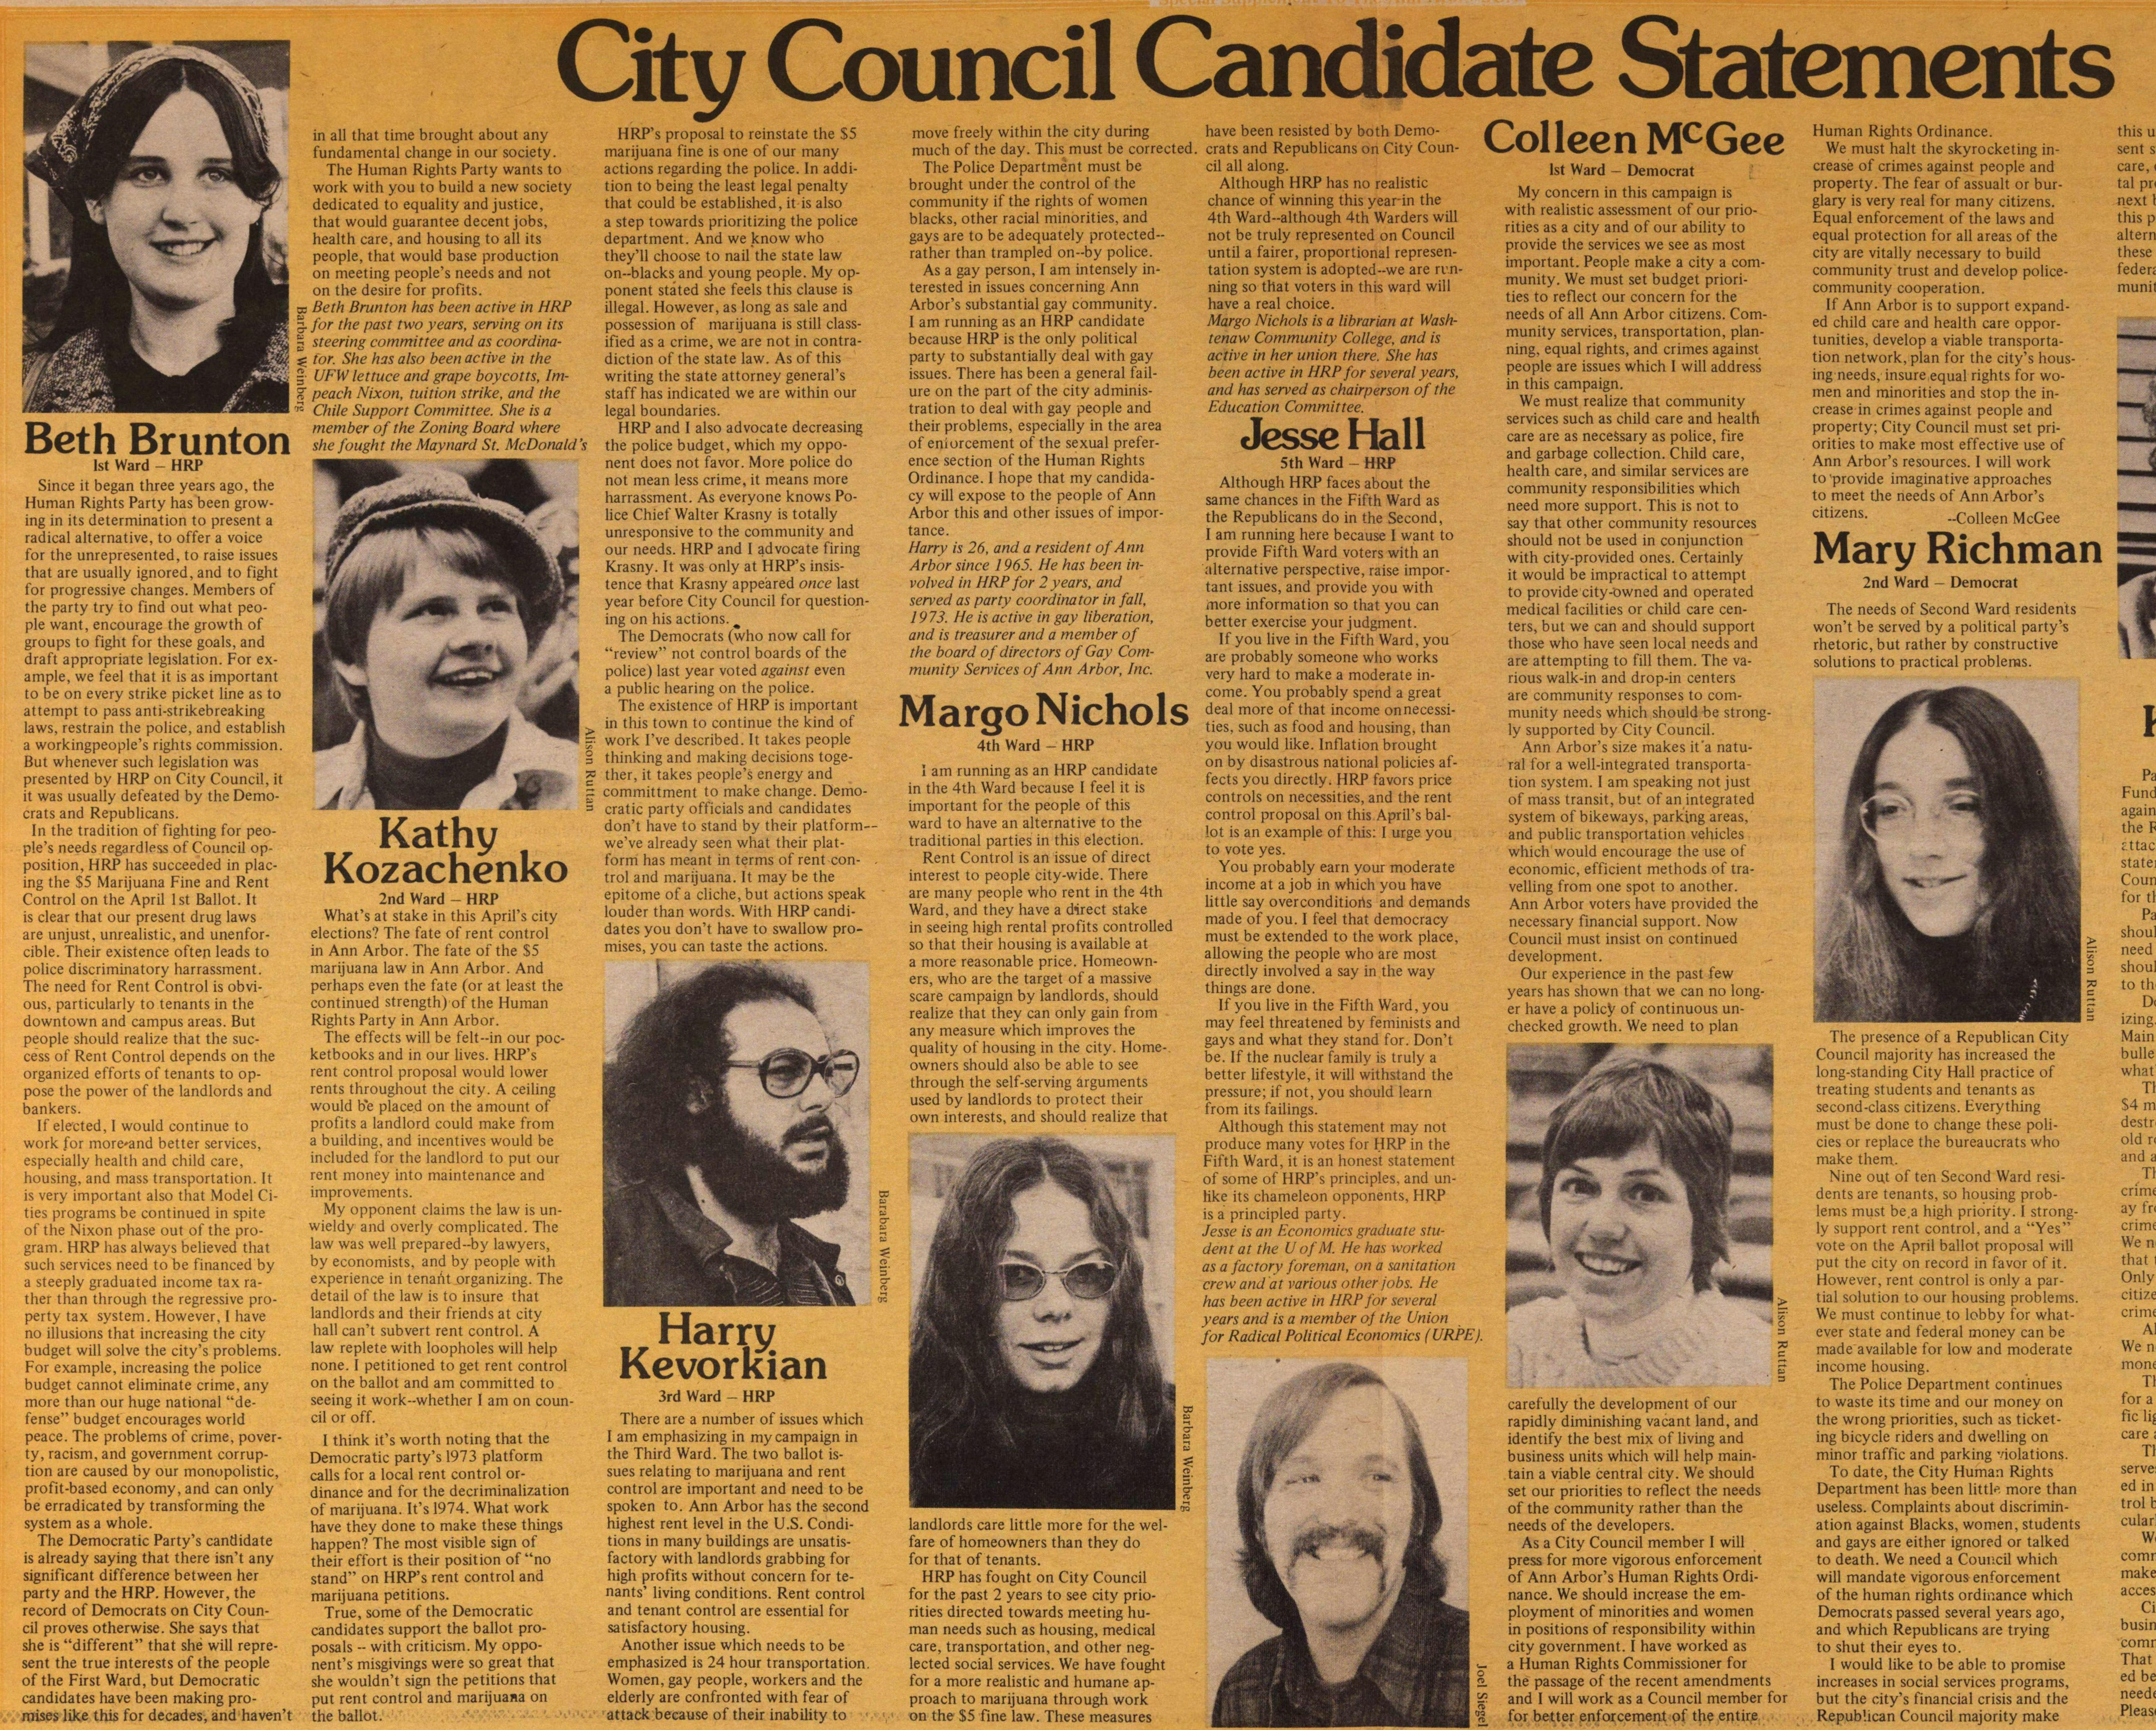 City Council Candidate Statements image